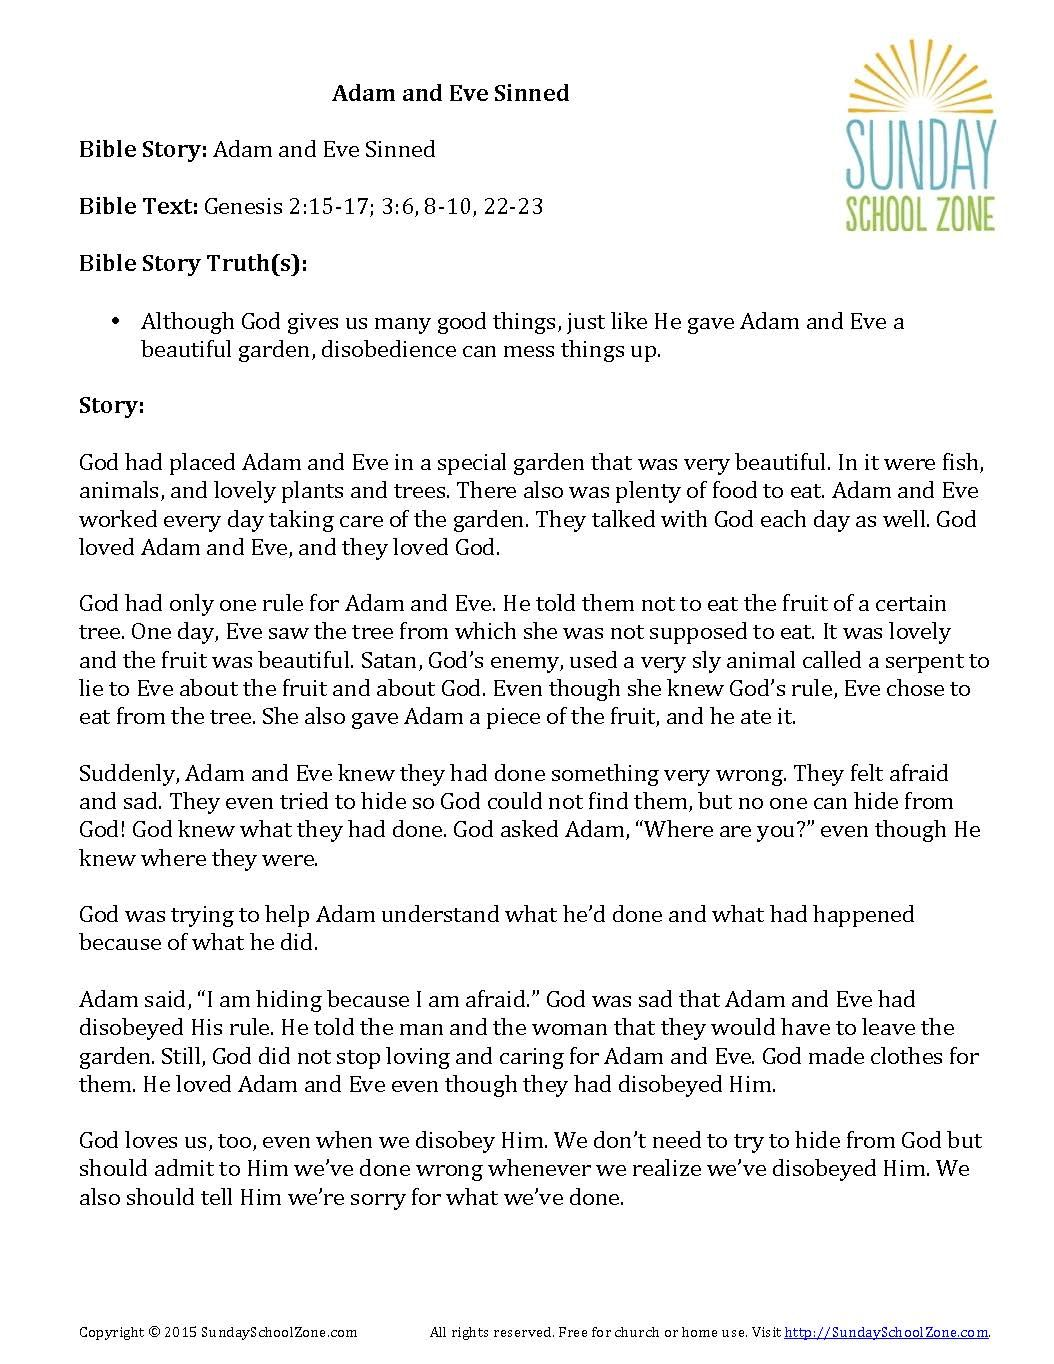 adam and eve bible story summary